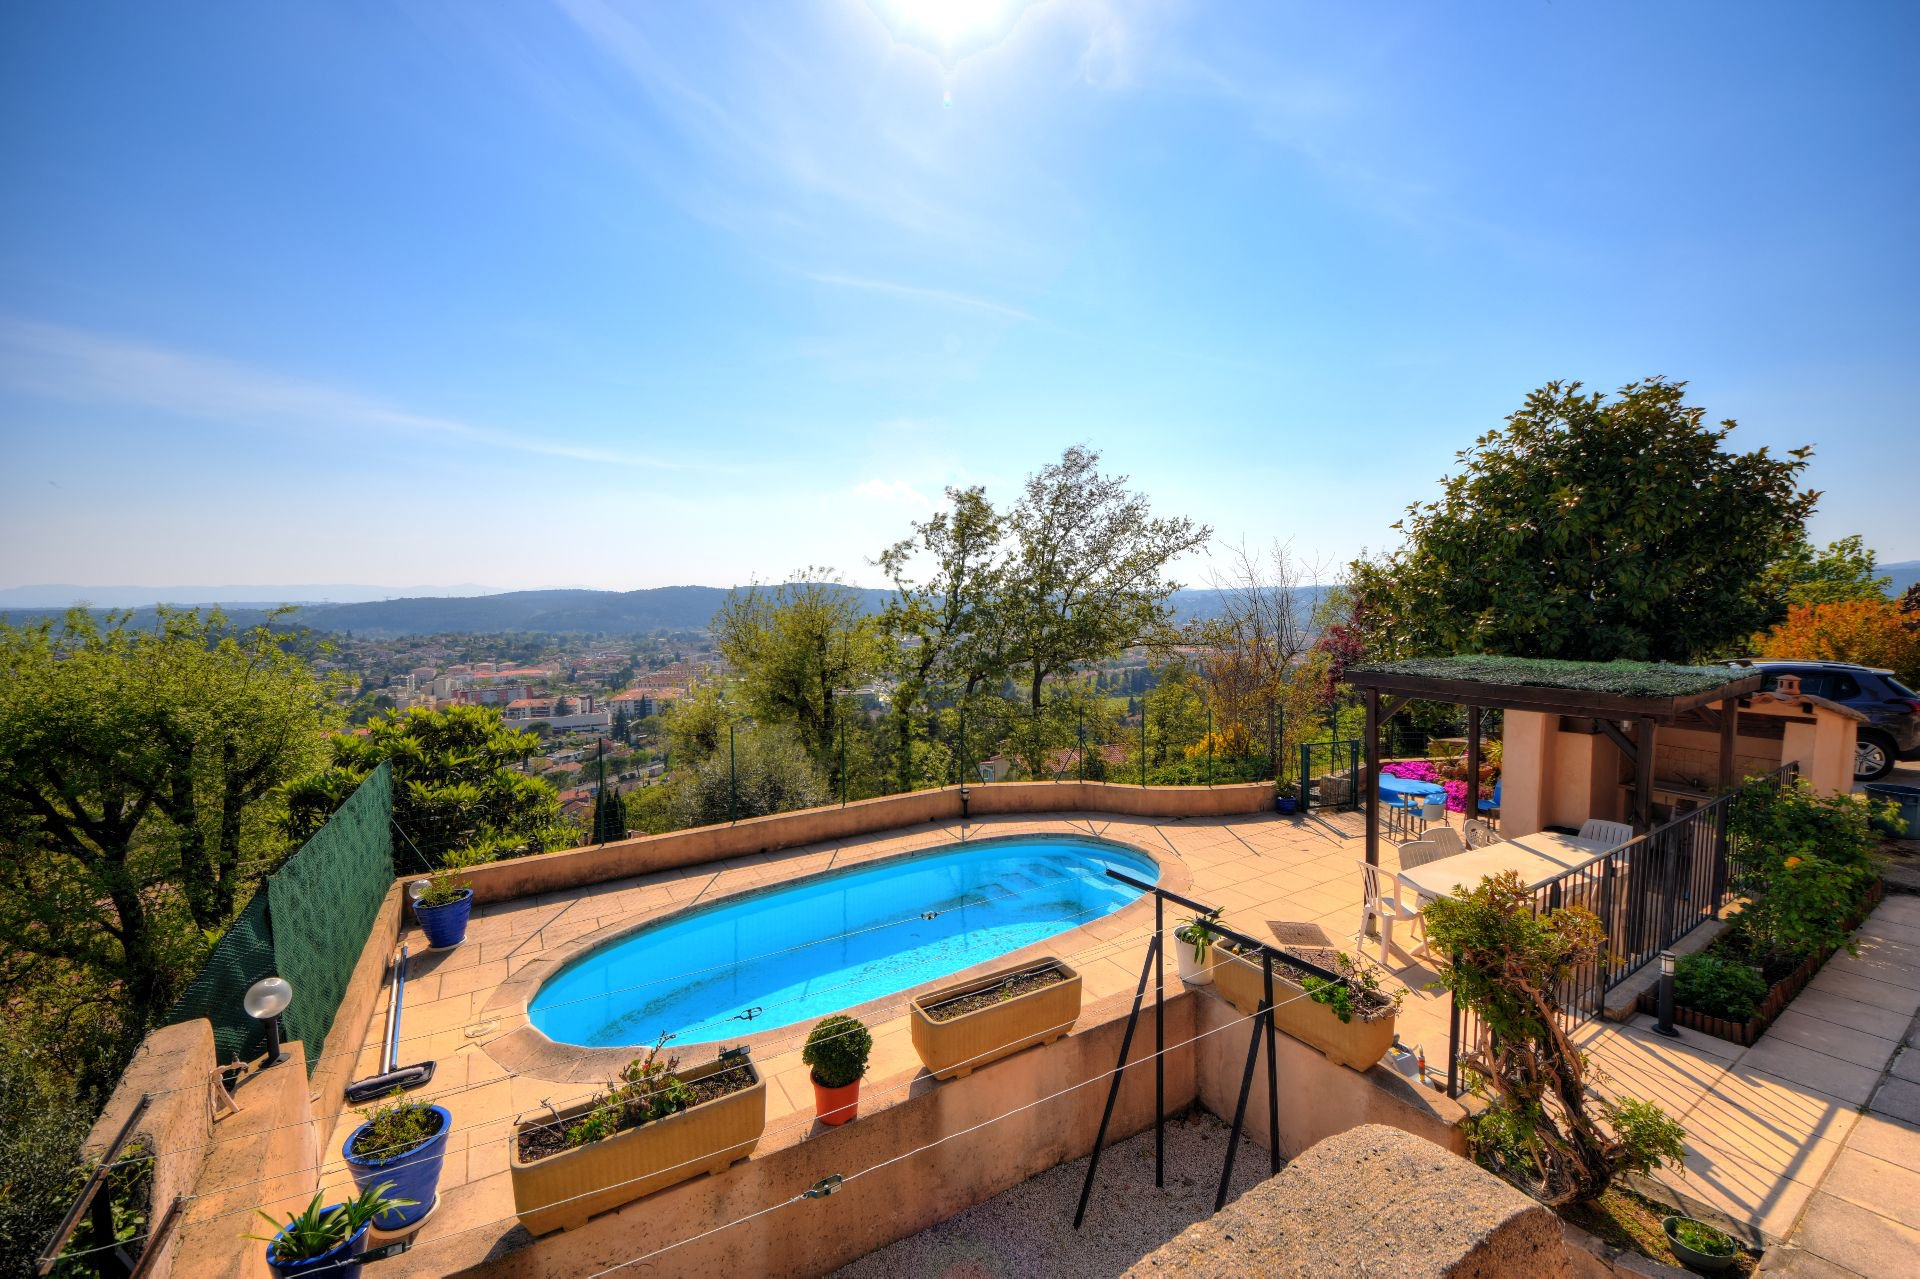 View on the swimming pool of the villa 328 m² panoramic view, Draguignan, Var, Provence